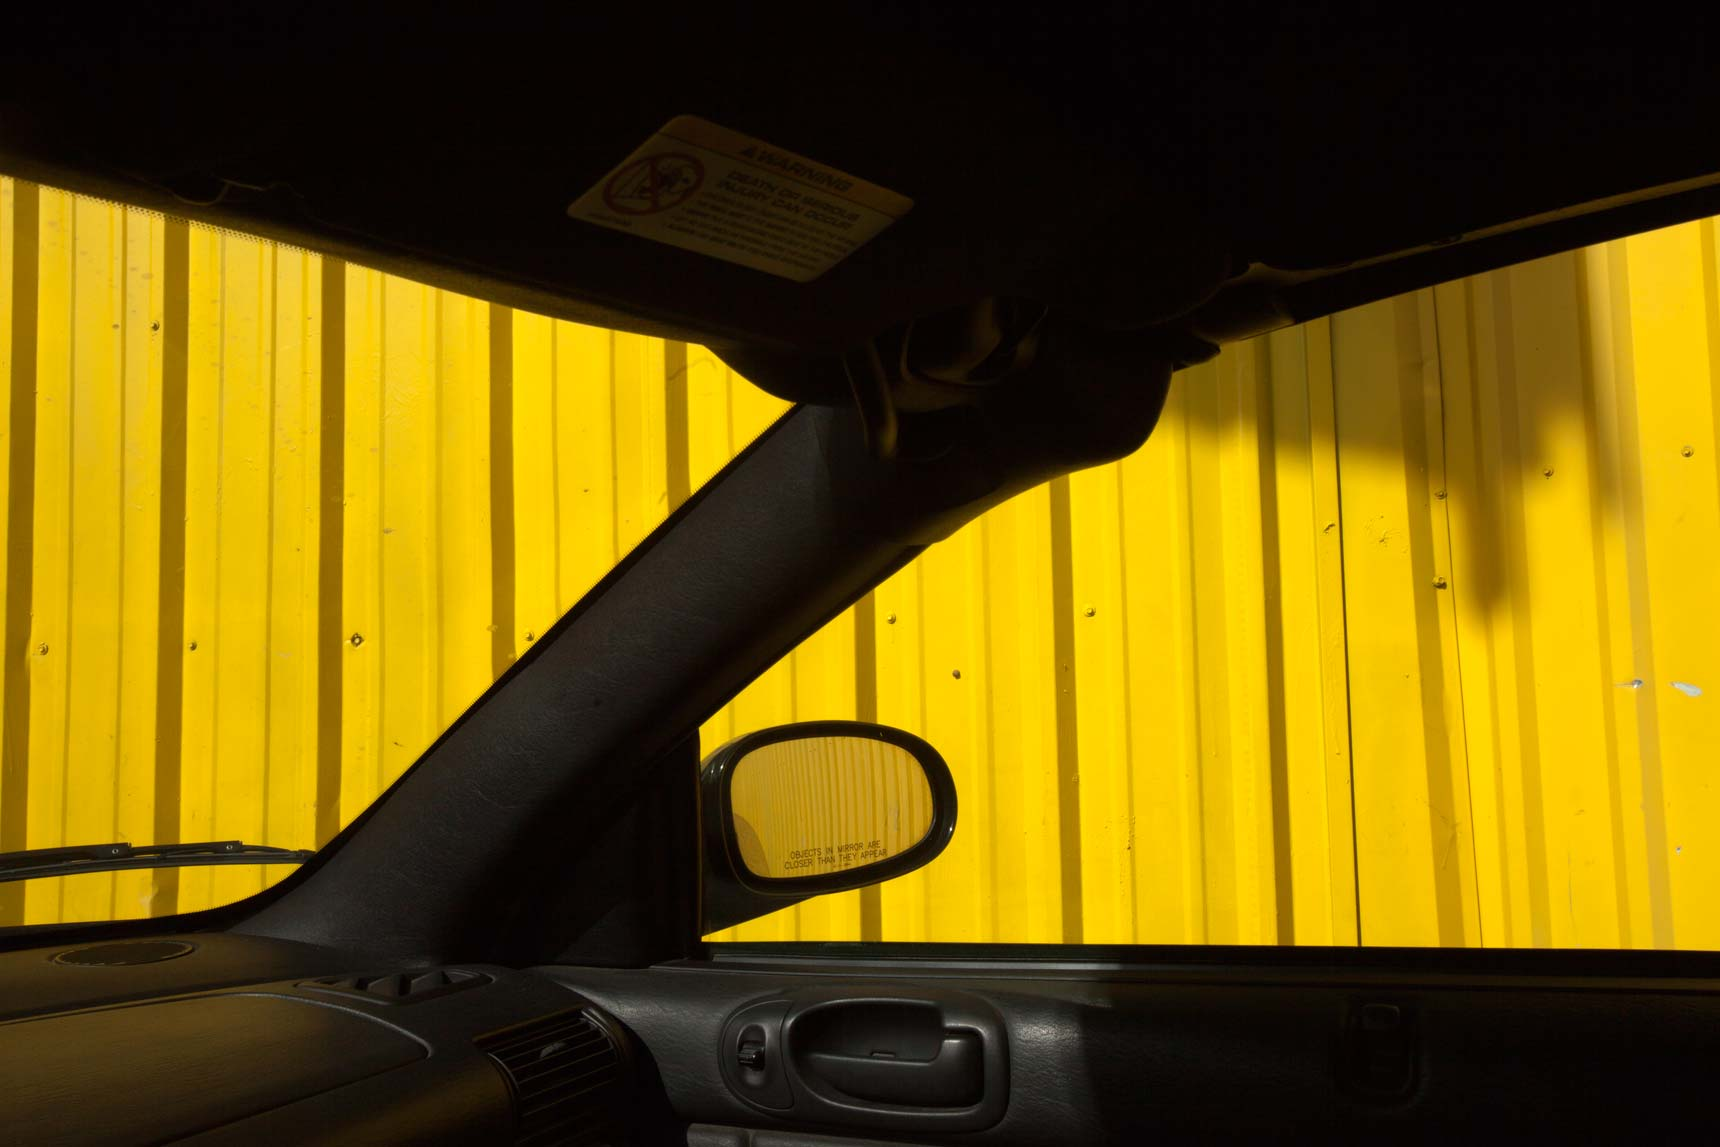 042Daniel_Kramer_Yellow